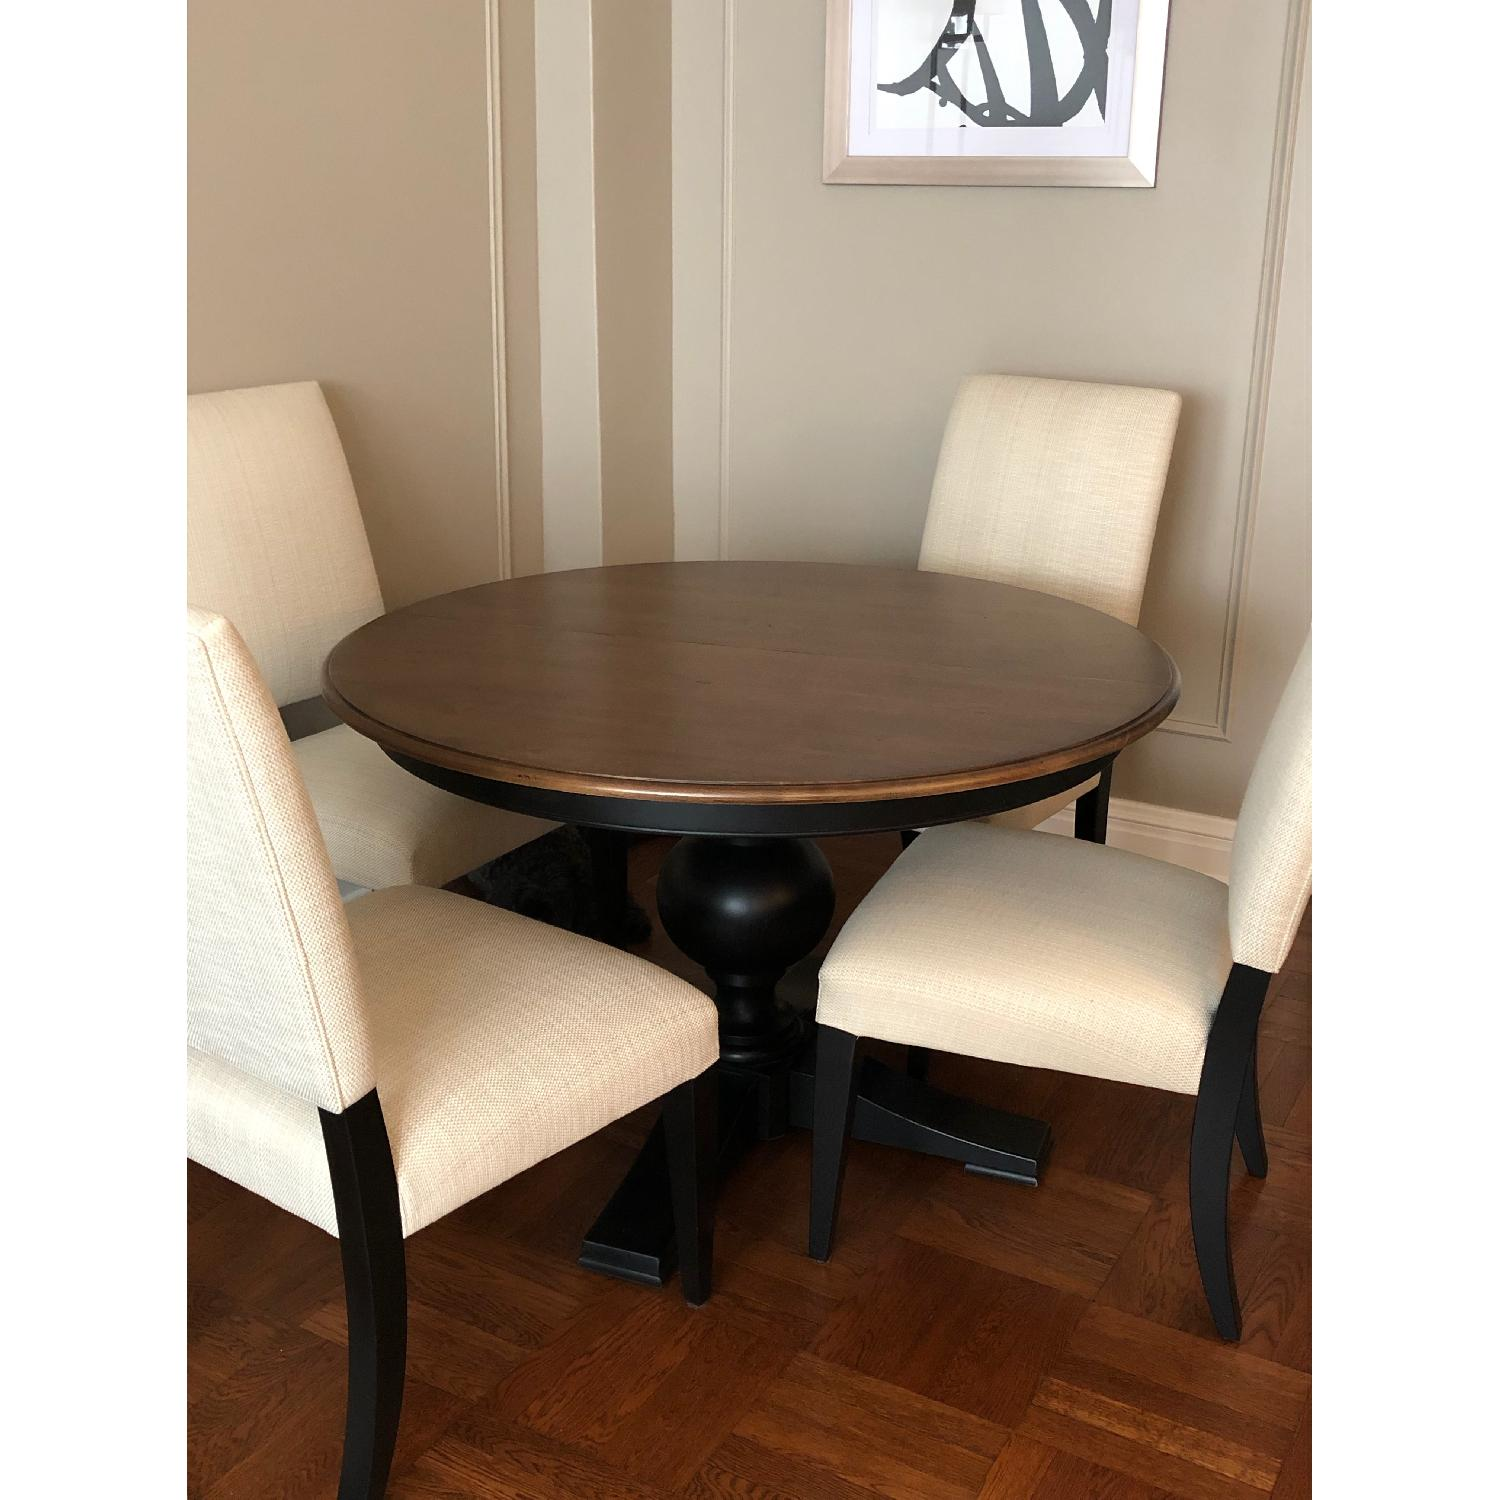 Ethan Allen Expandable Dining Table w/ 4 Chairs - image-2